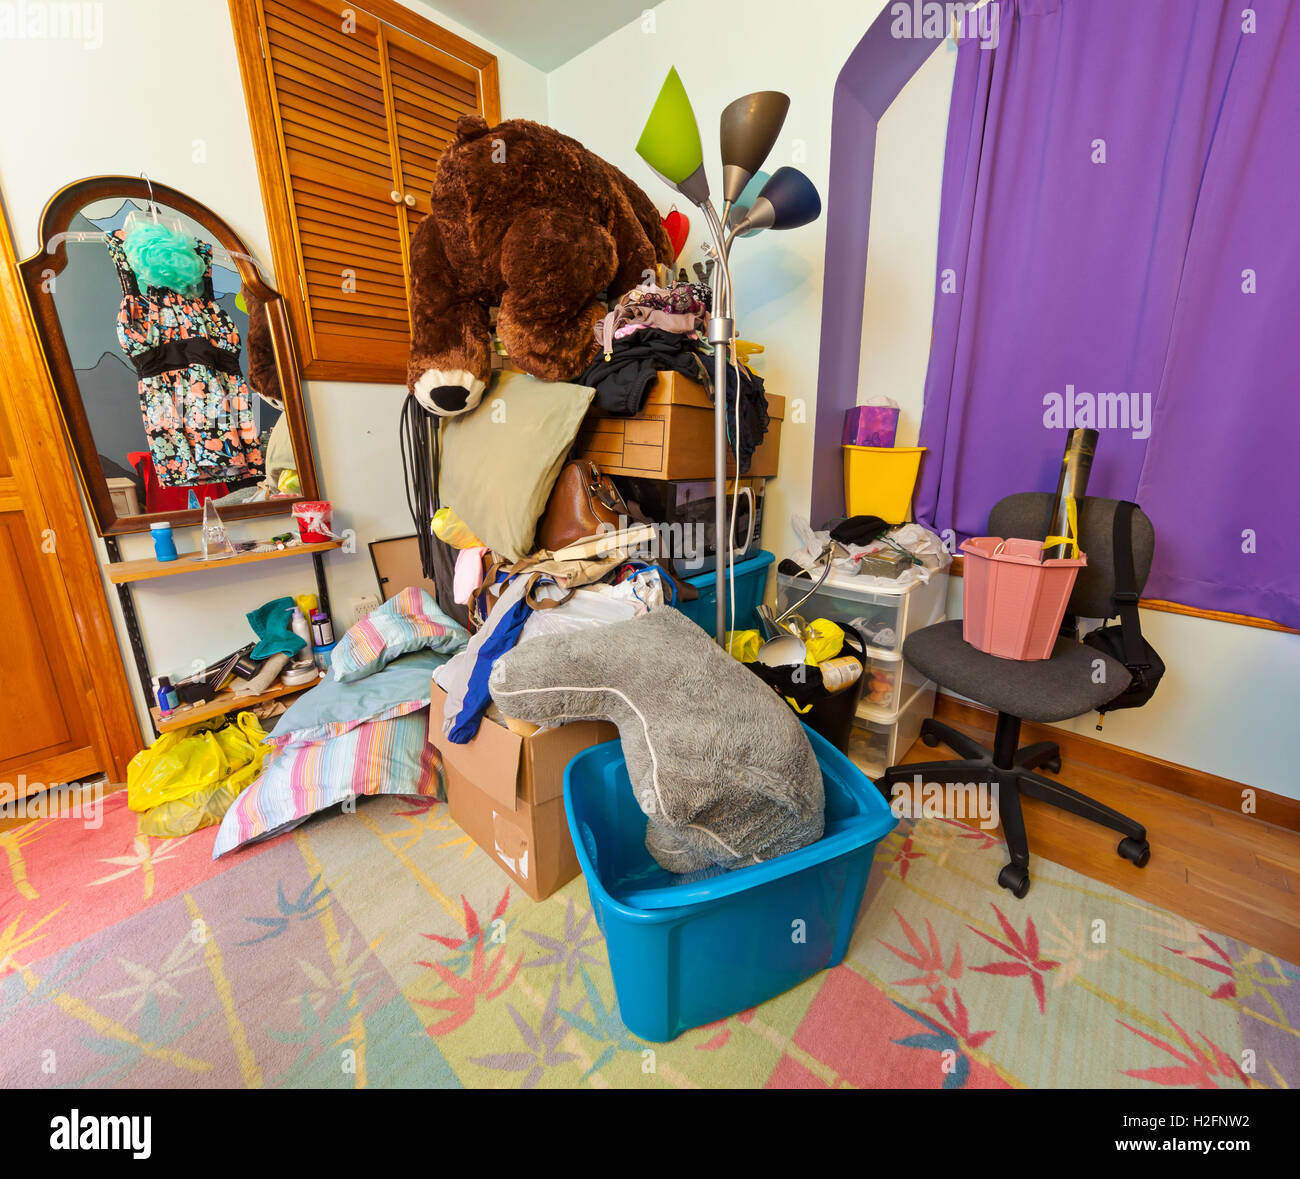 A cluttered college dorm room. - Stock Image